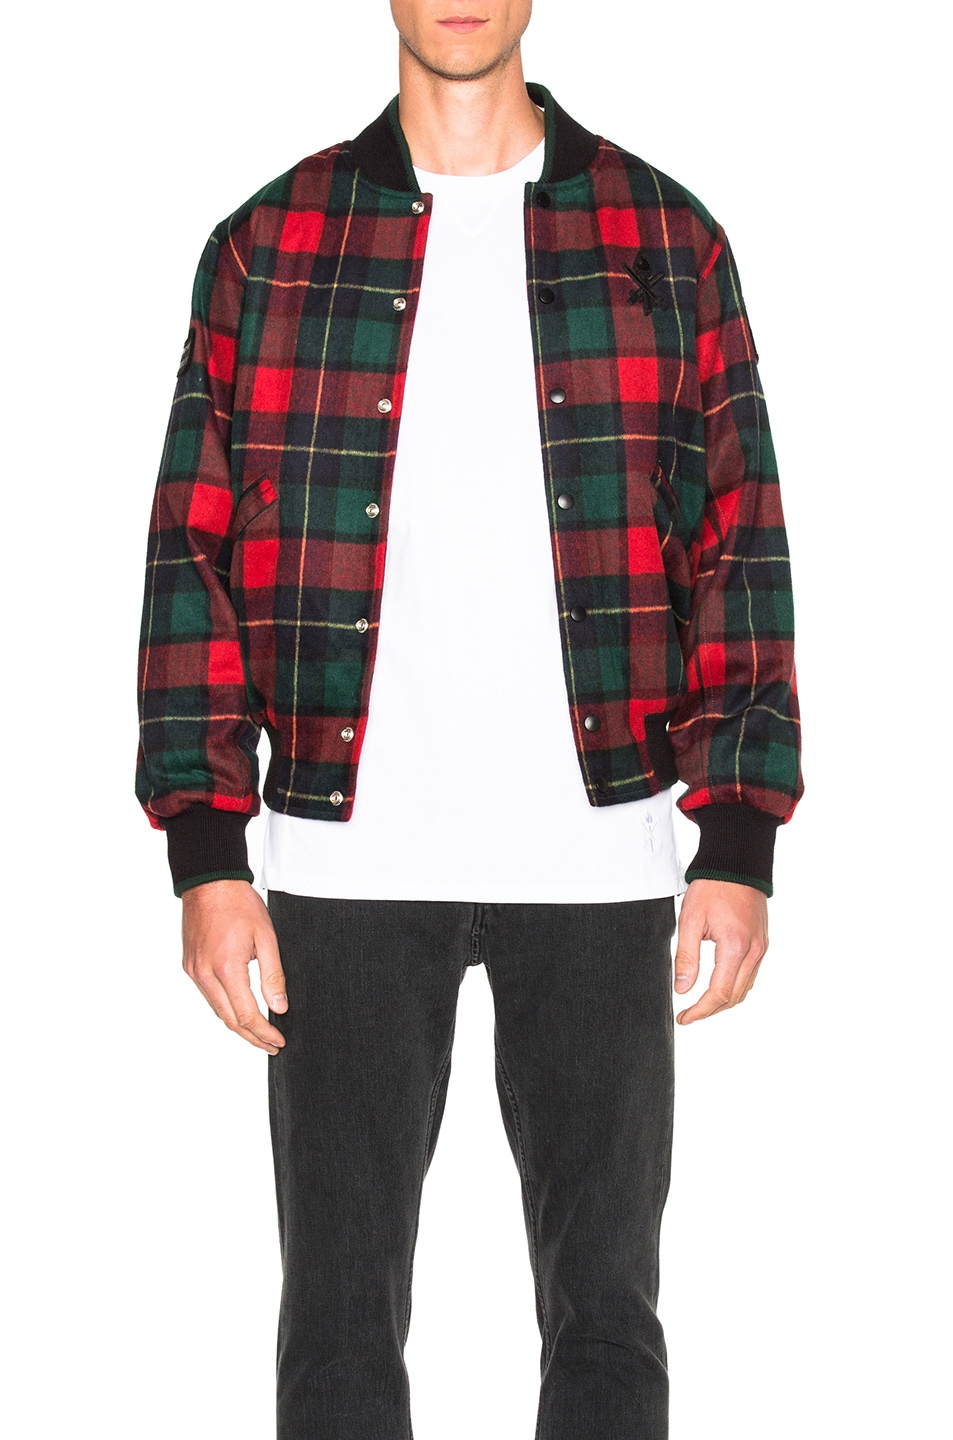 f78e5510d76f Image 1 of Opening Ceremony Plaid Varsity Jacket in Red Multi